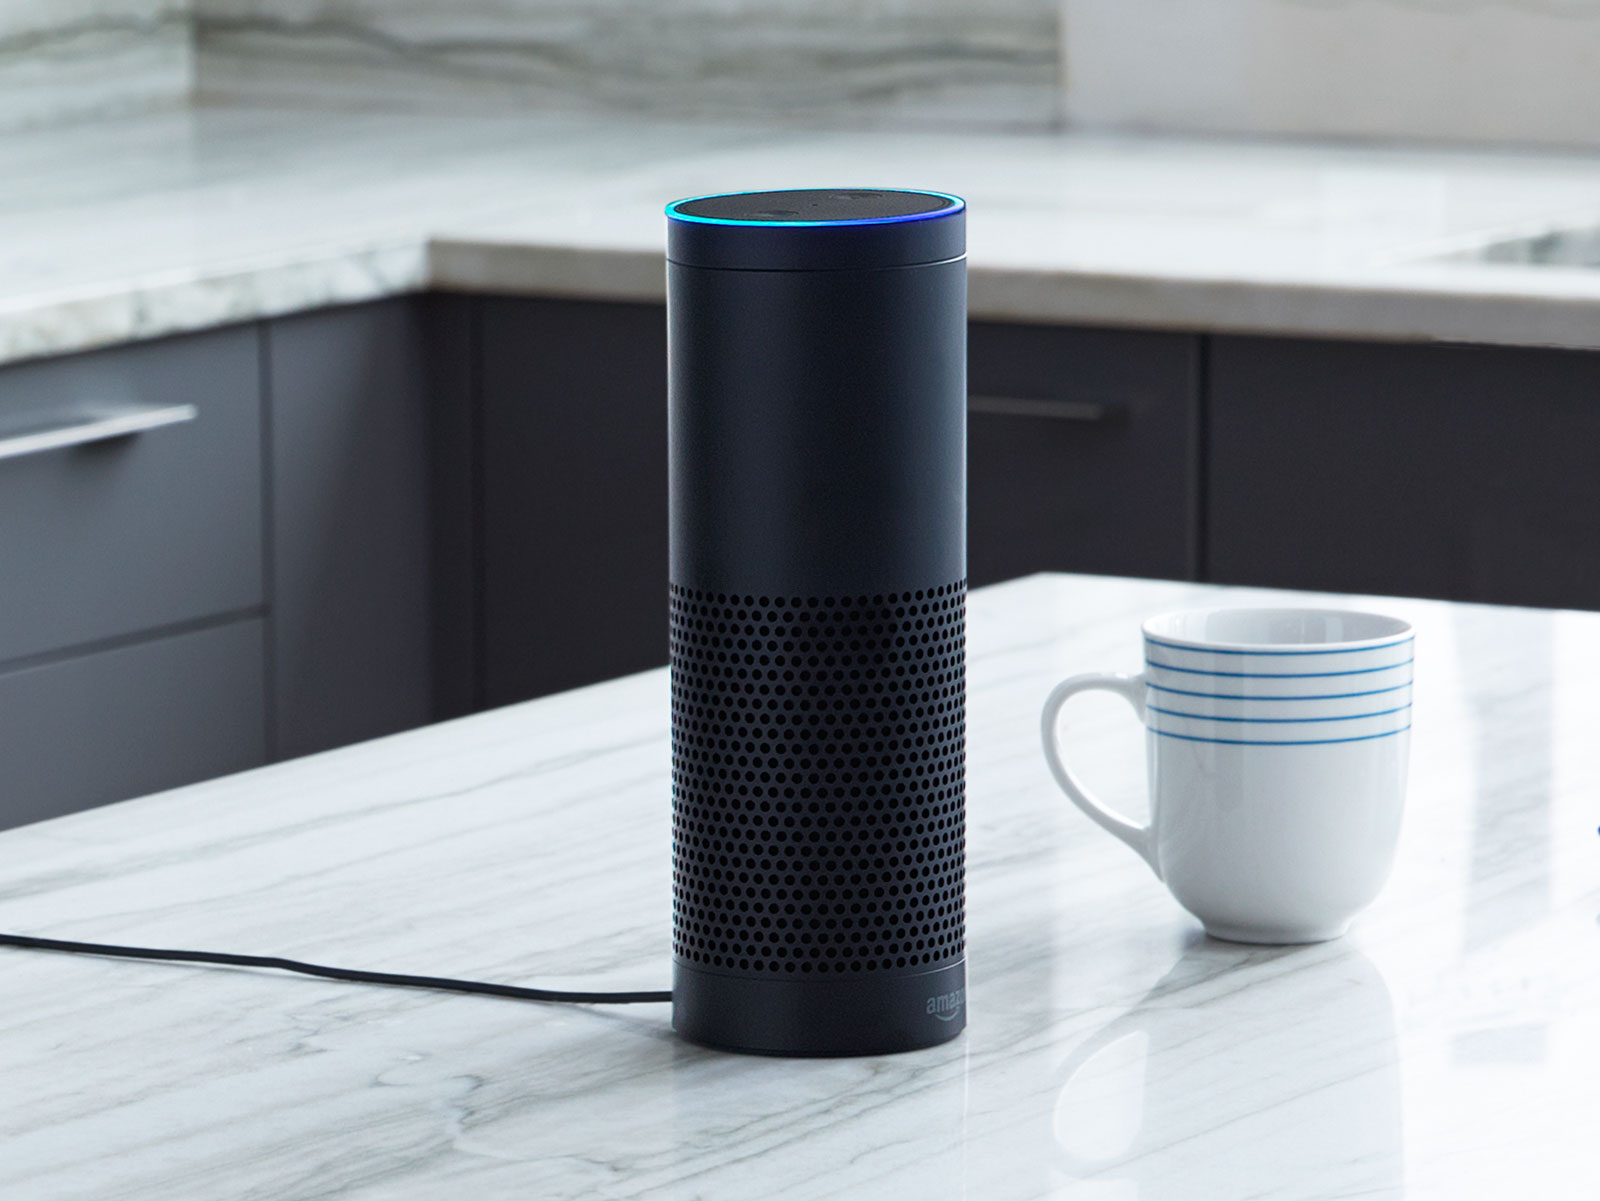 Amazon Is Finding Innovative Ways to Bring Impulse Buys into the Home